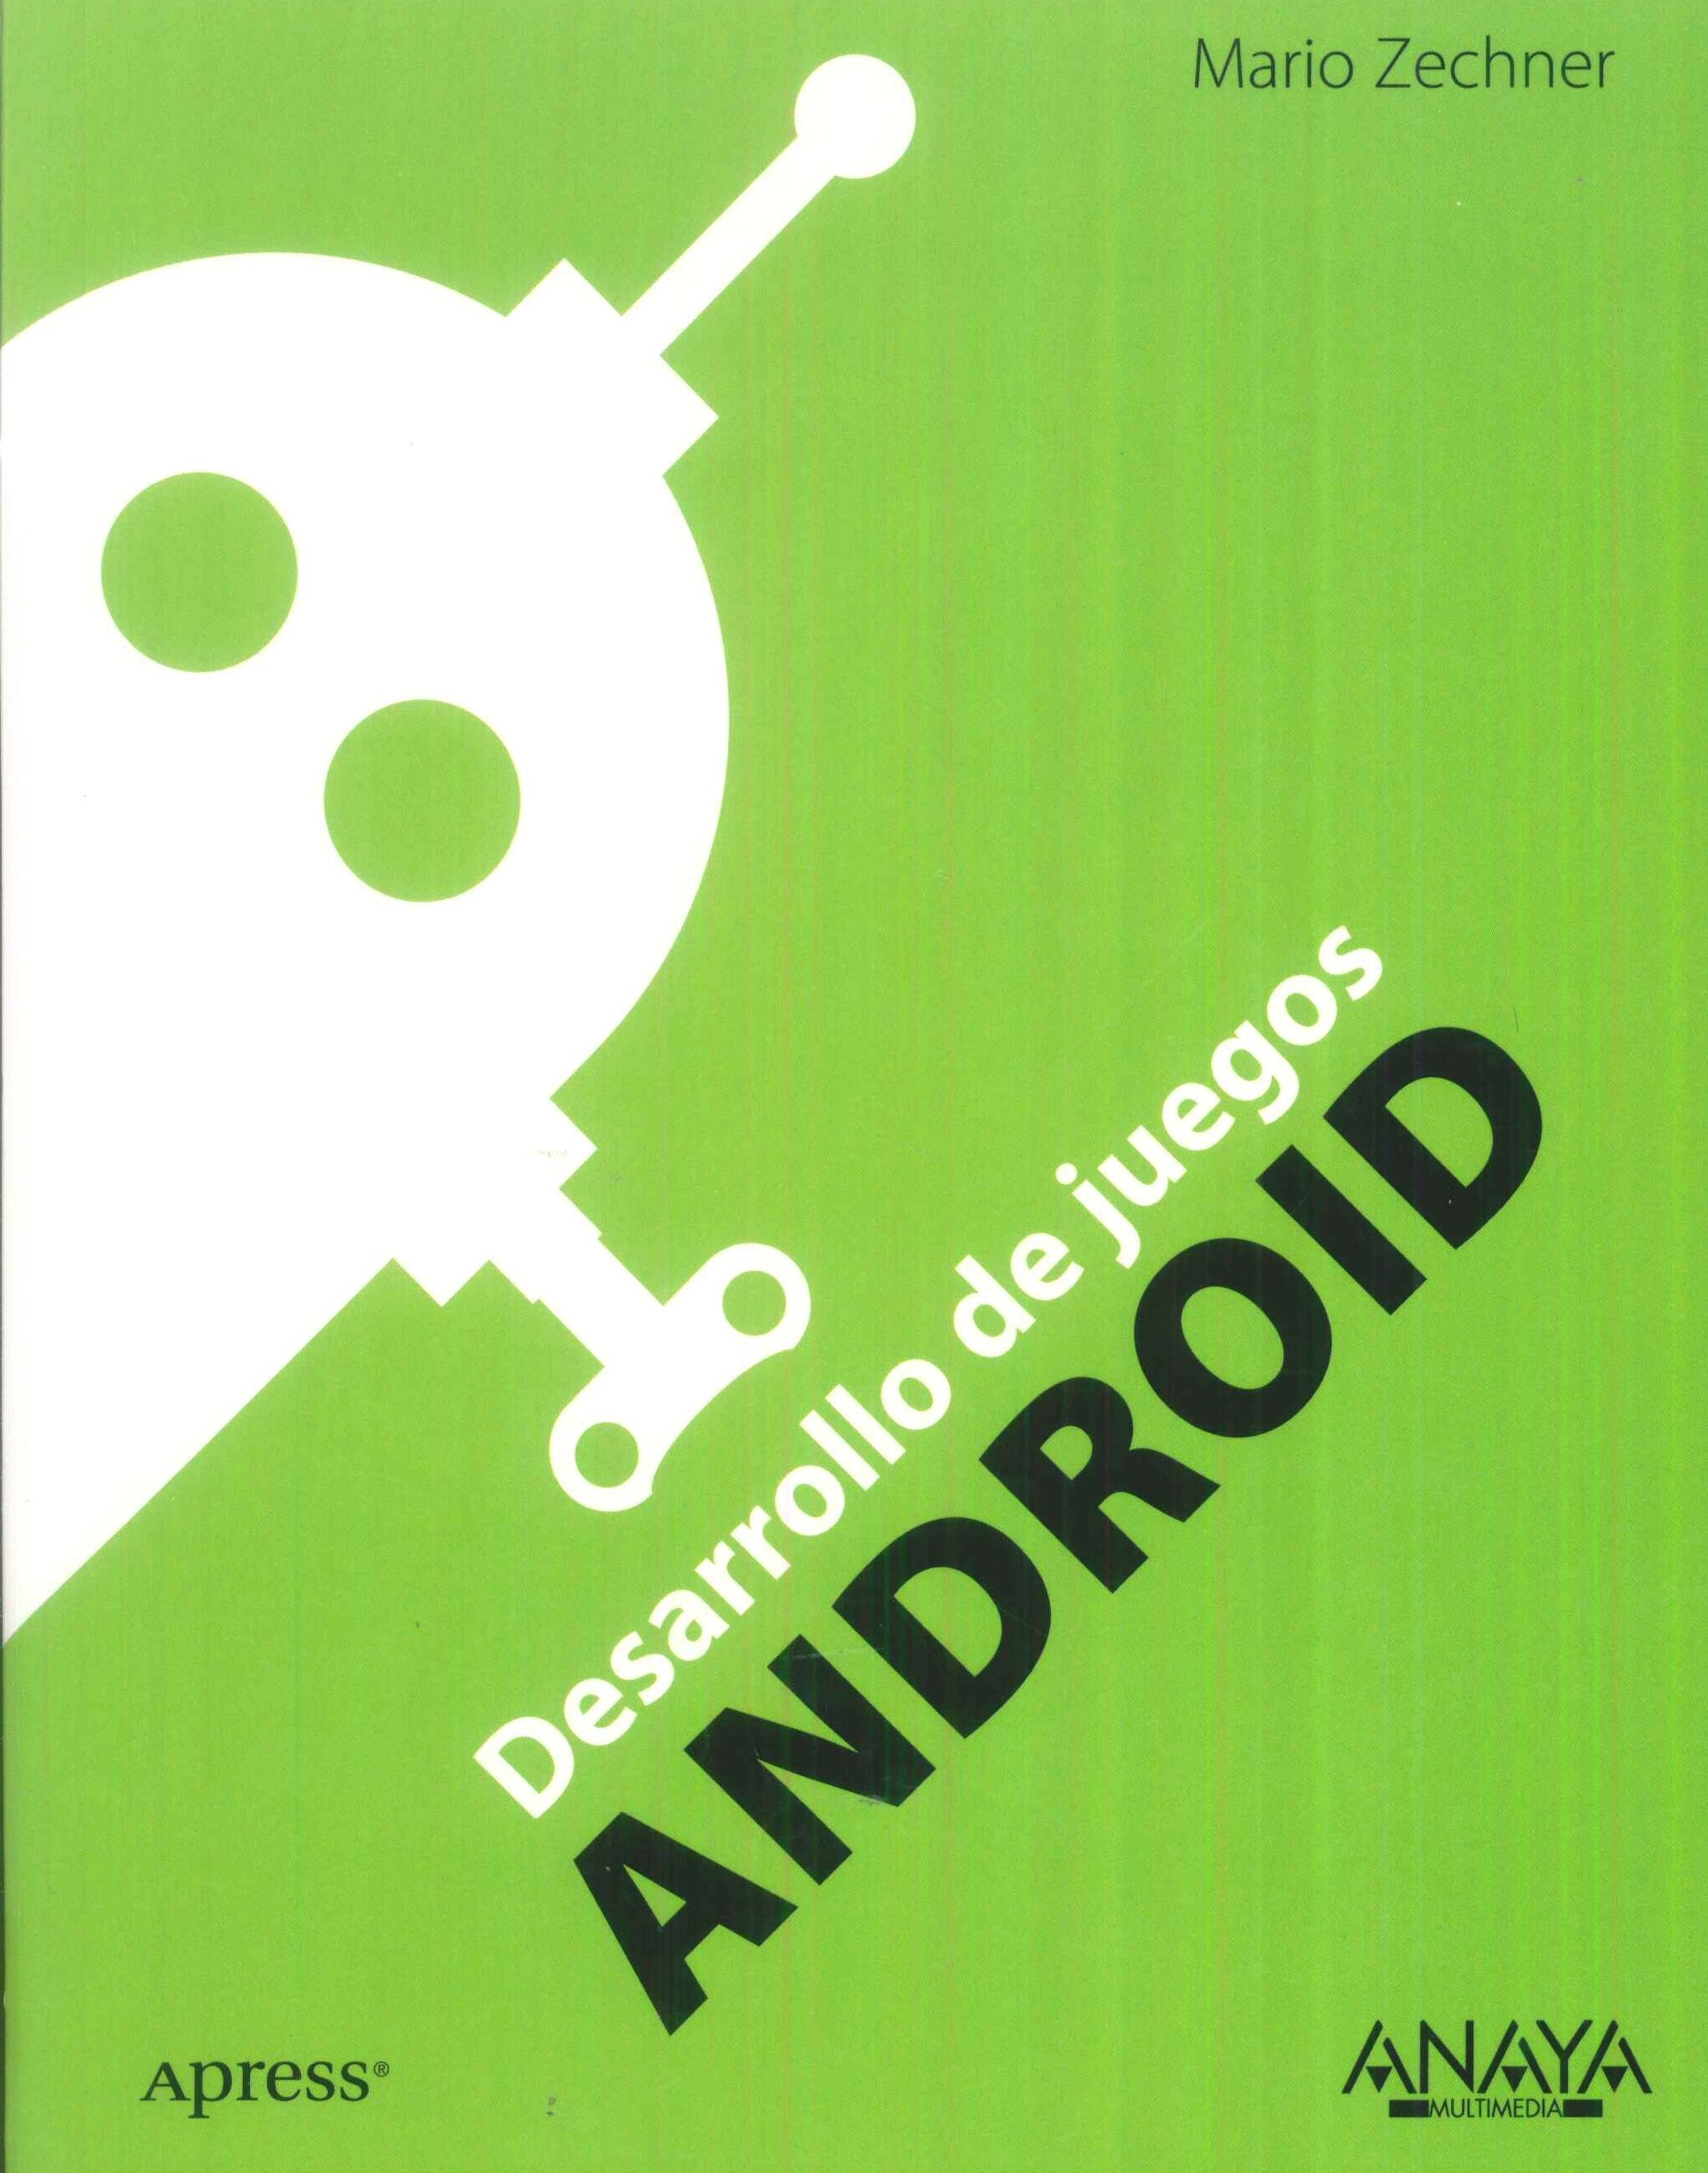 Libros Android Pin By Cesar Smith On Android Pinterest Libros Novedad And